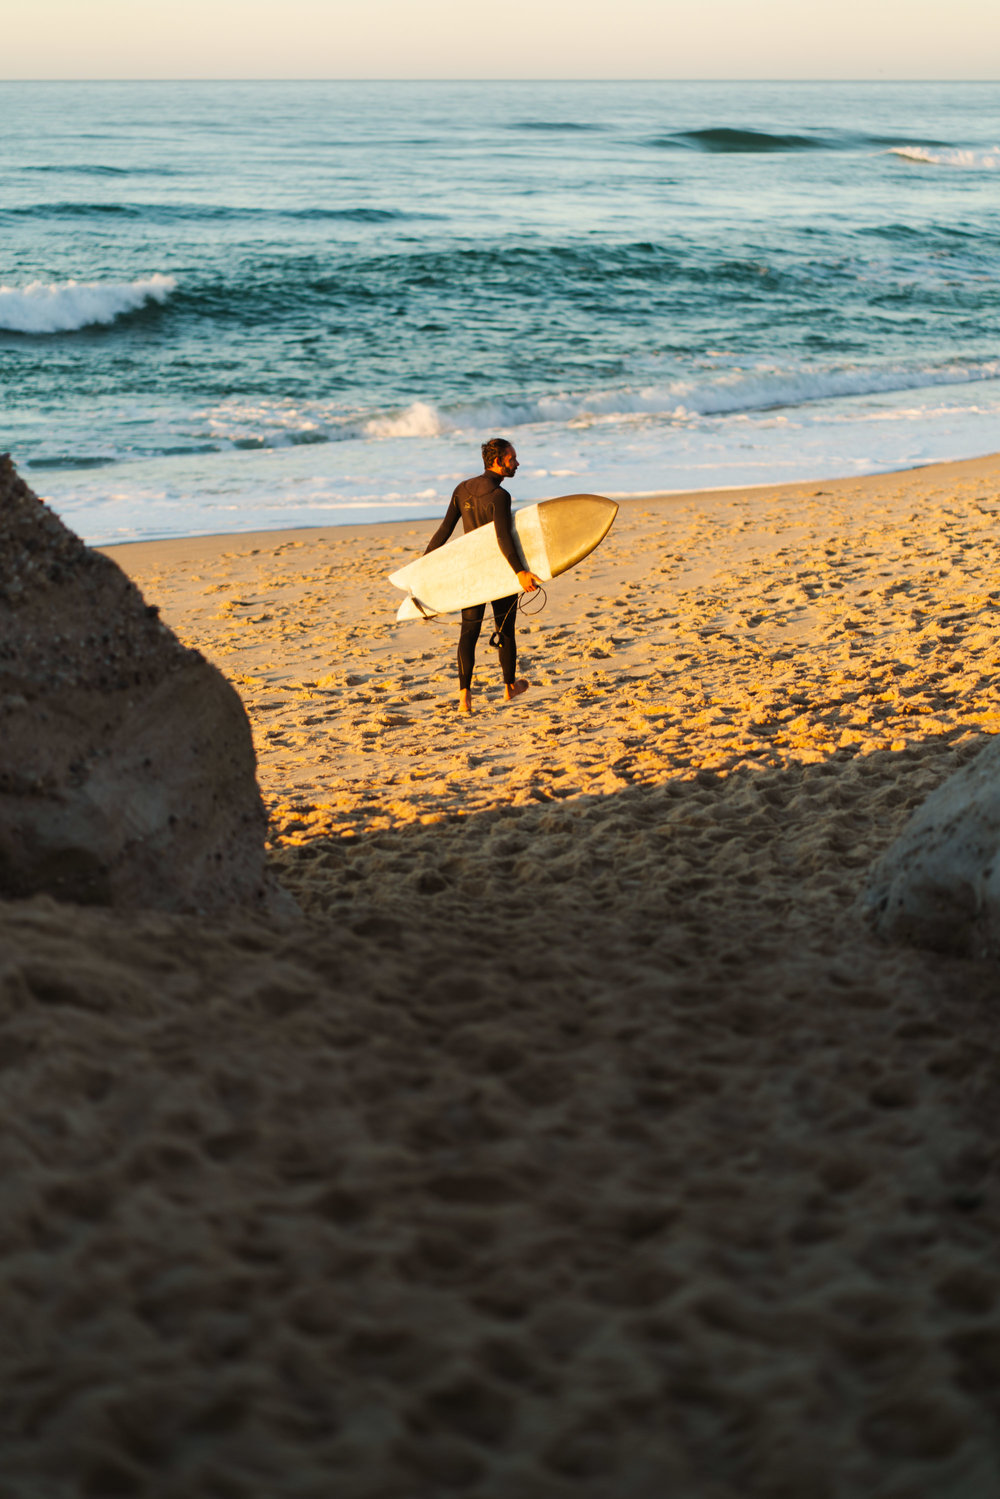 Surfer in the sand between the rocks at sunset.